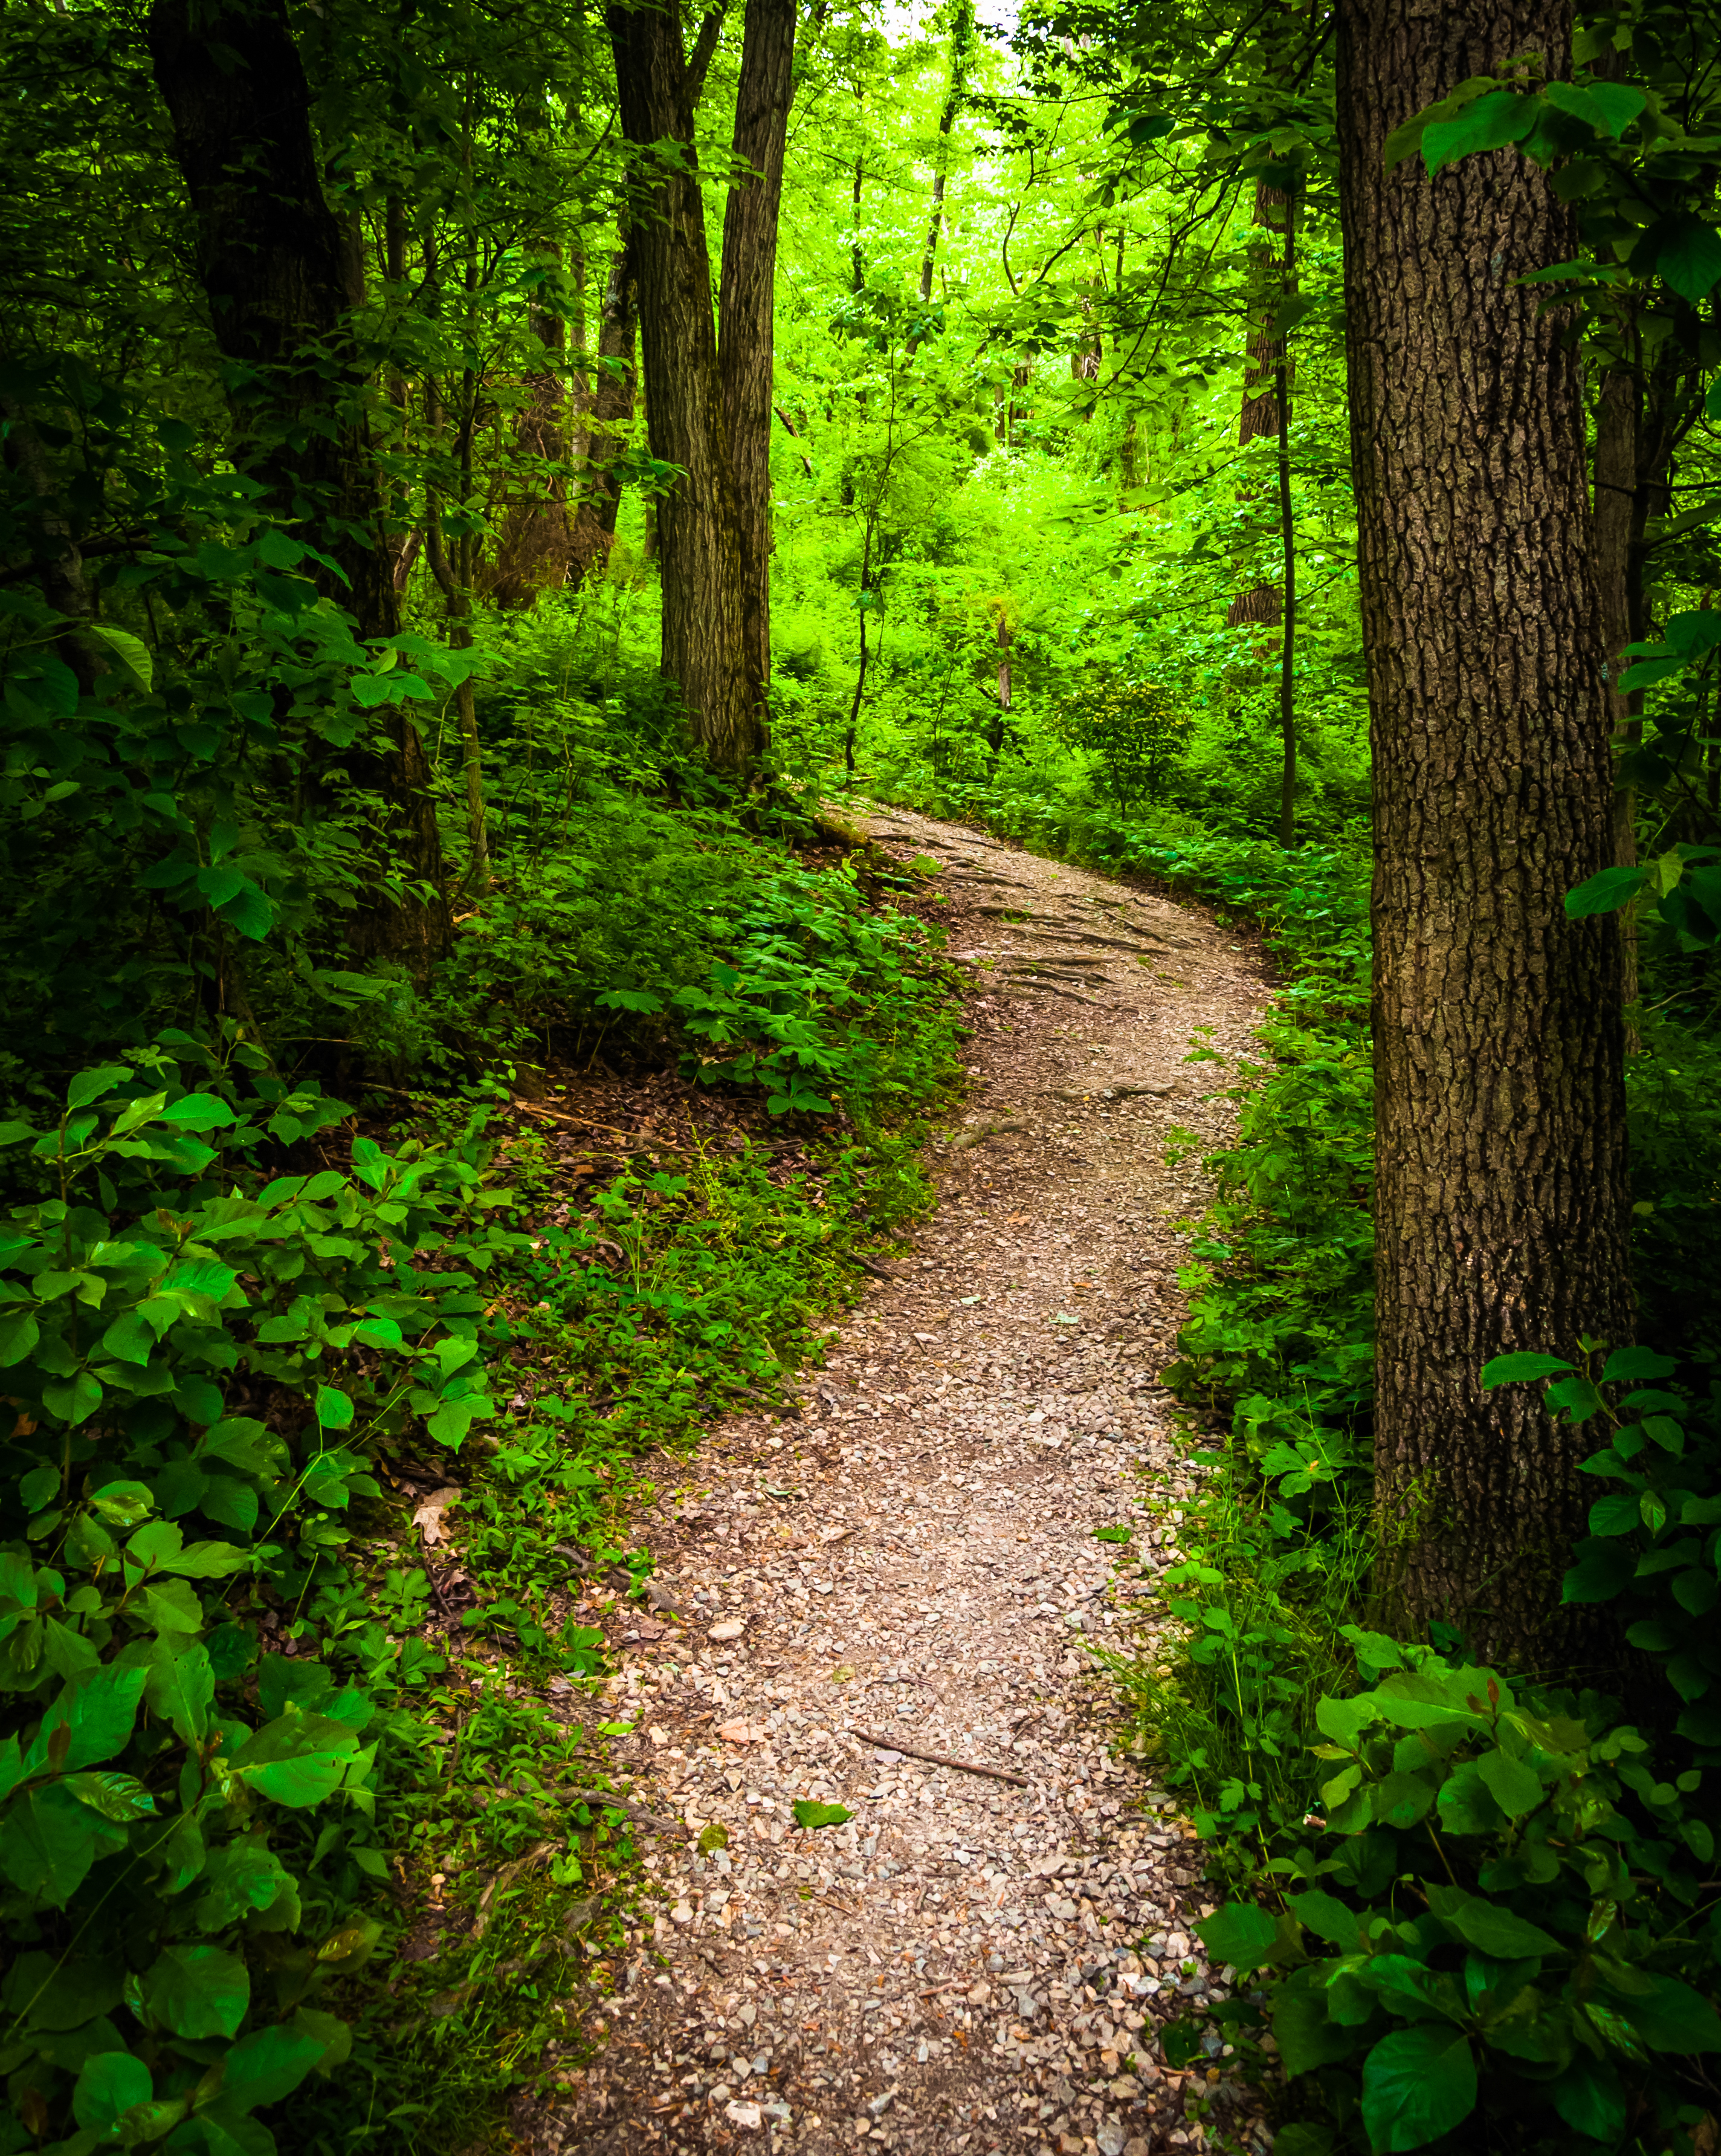 Trail through lush green forest in Codorus State Park, Pennsylvania